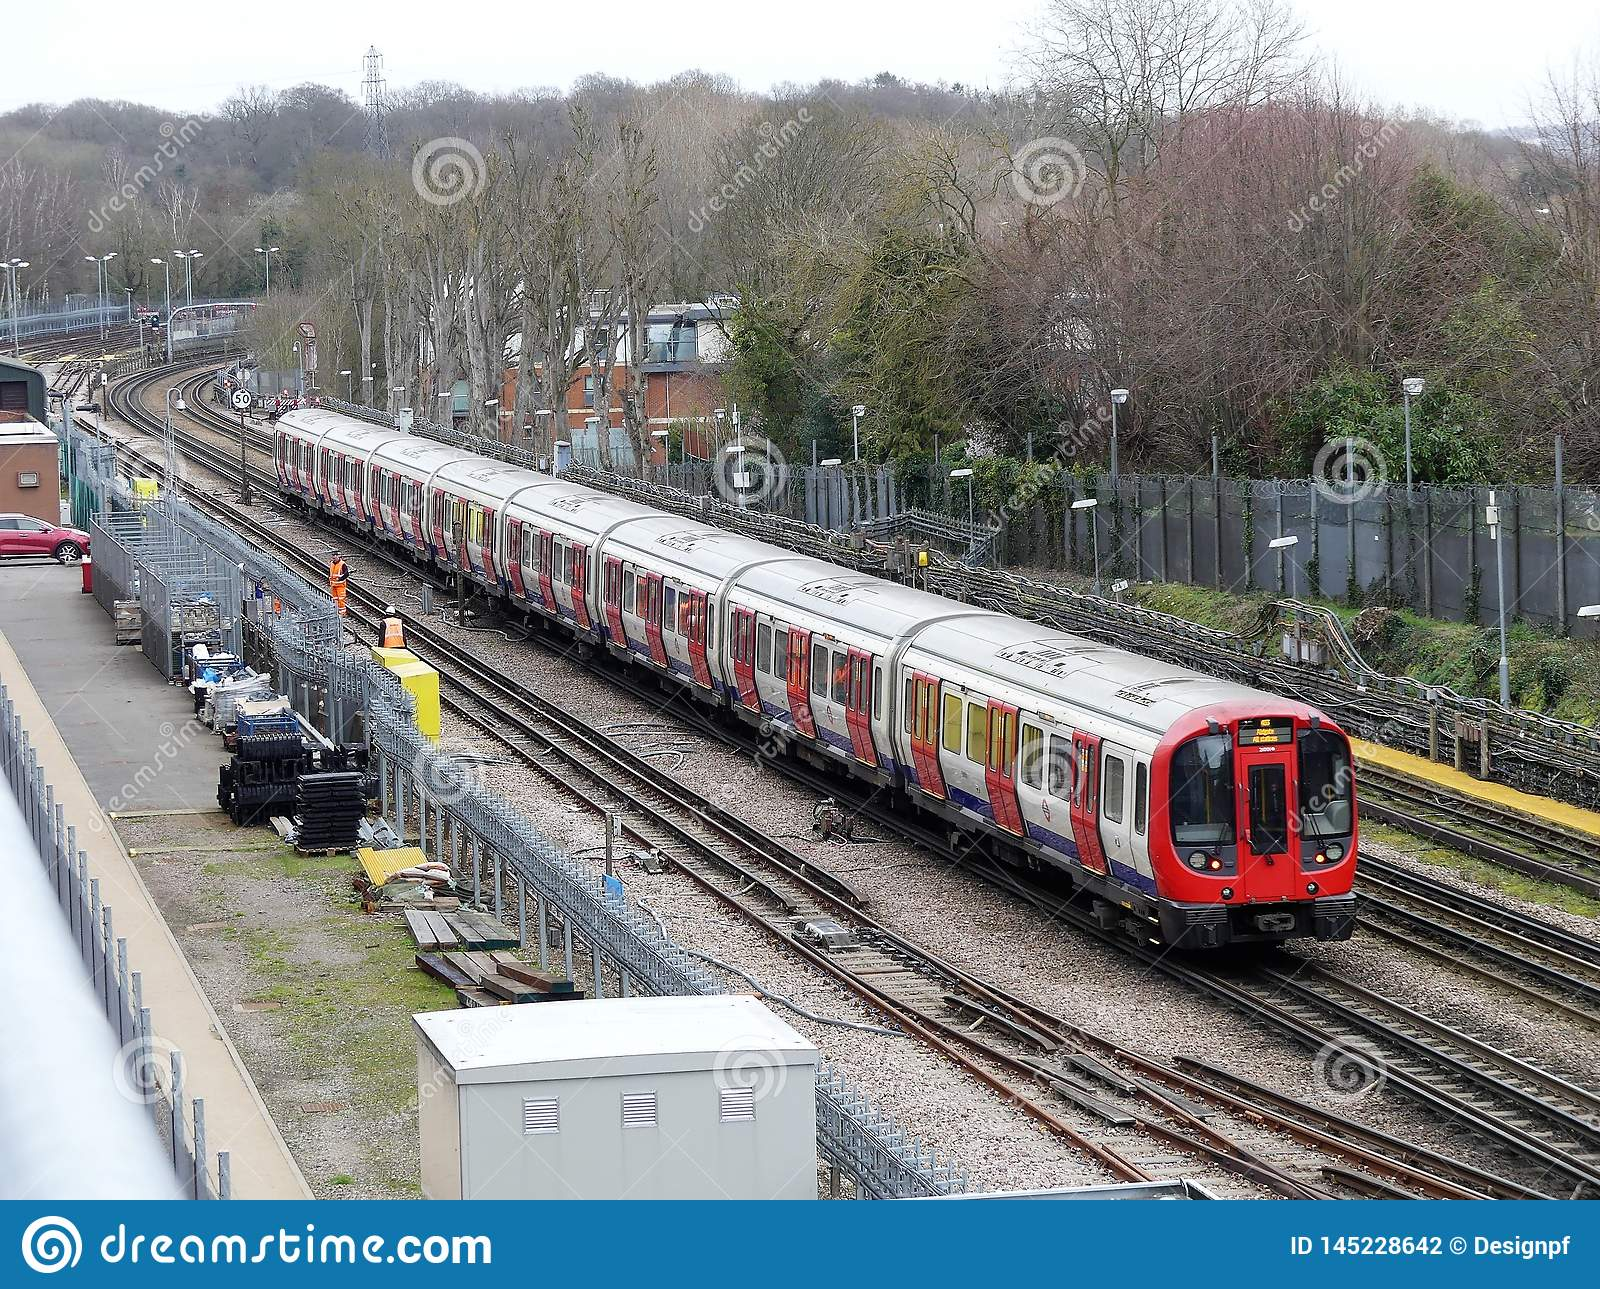 London Underground train passing by on track in Rickmansworth